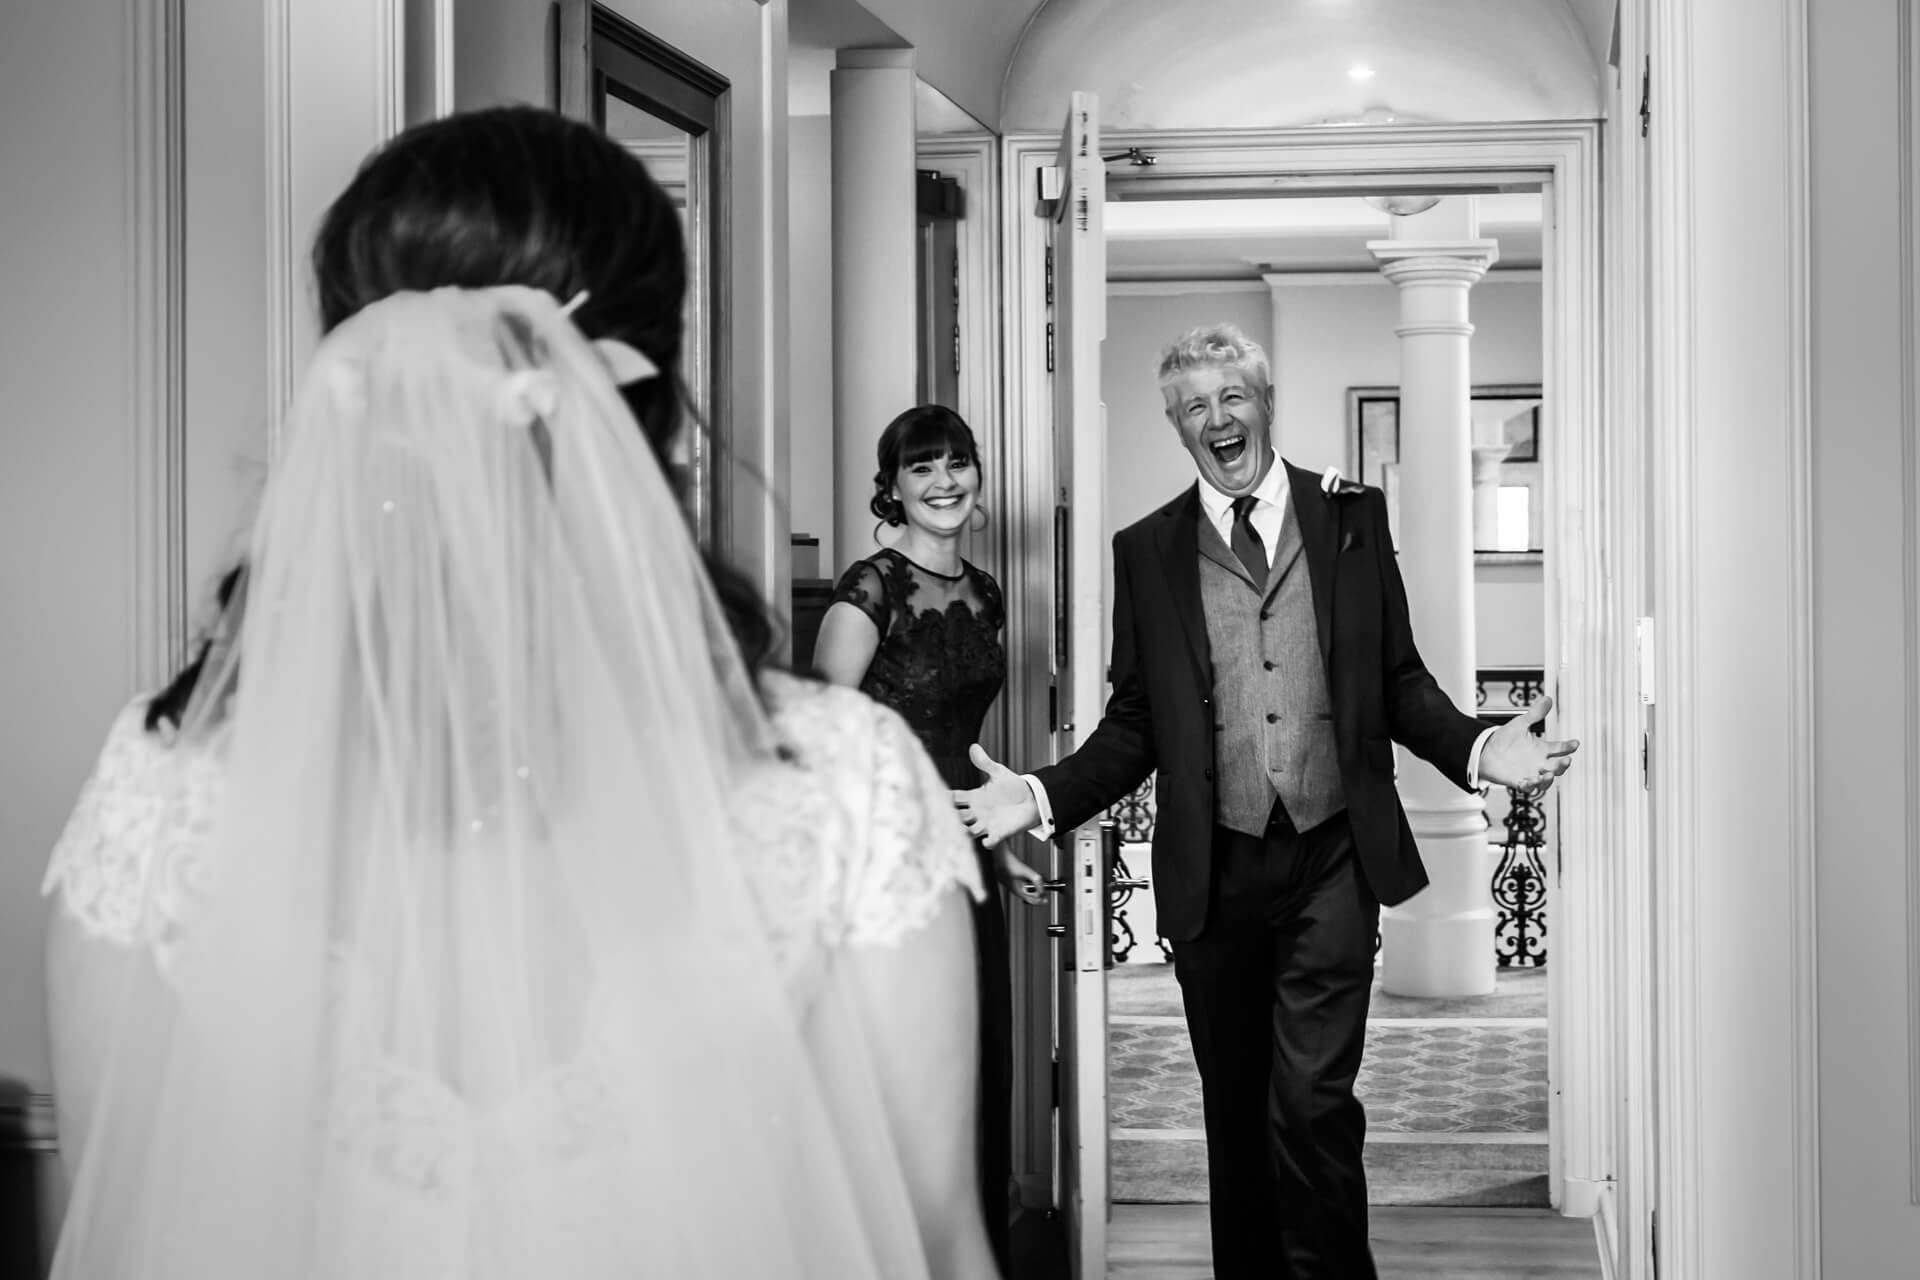 father of the bride is raising his hands with delight as he sees the bride